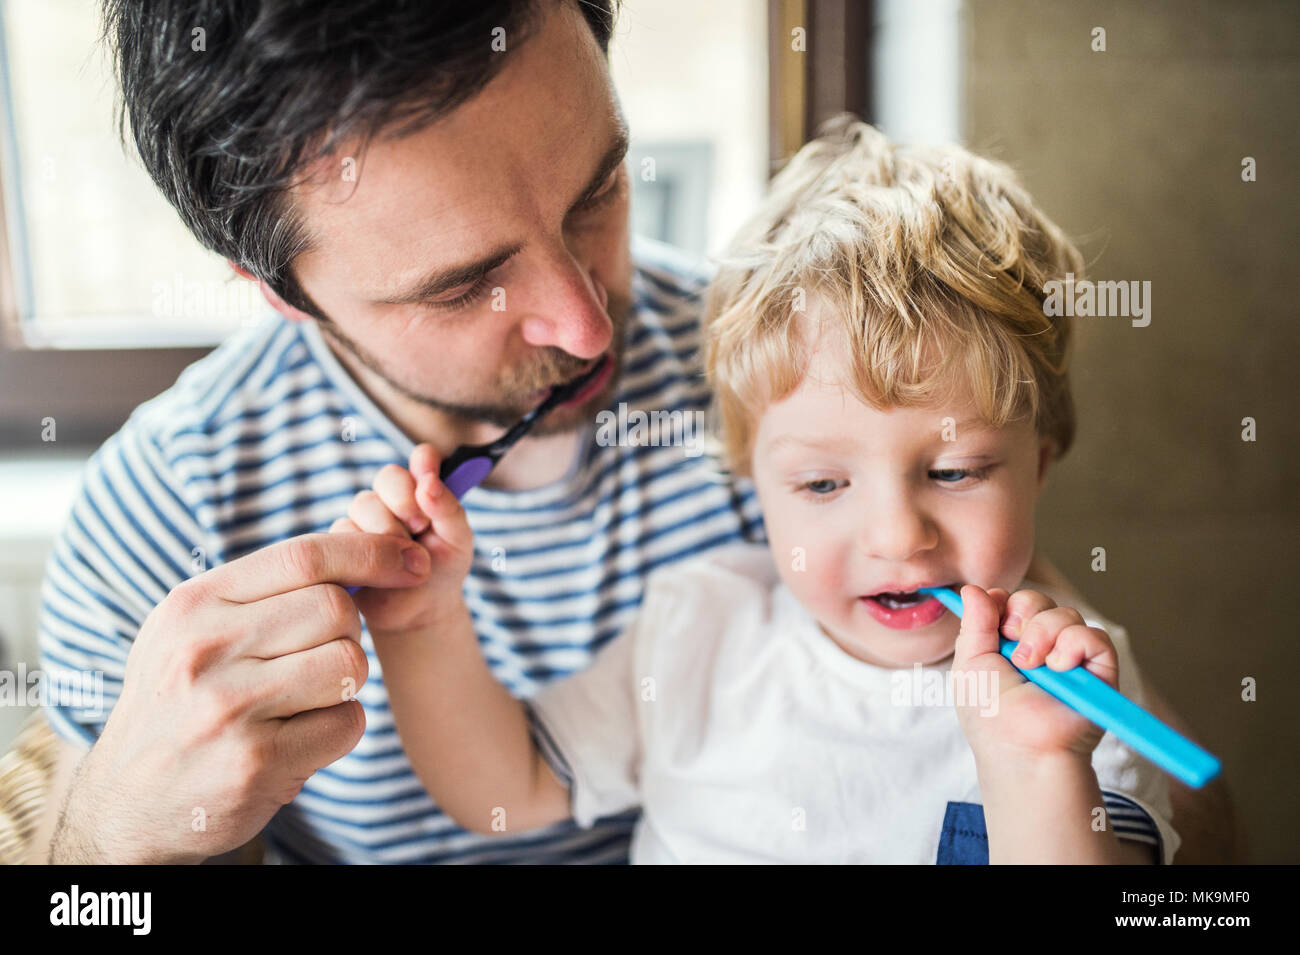 Father brushing his teeth with a toddler boy at home. Stock Photo